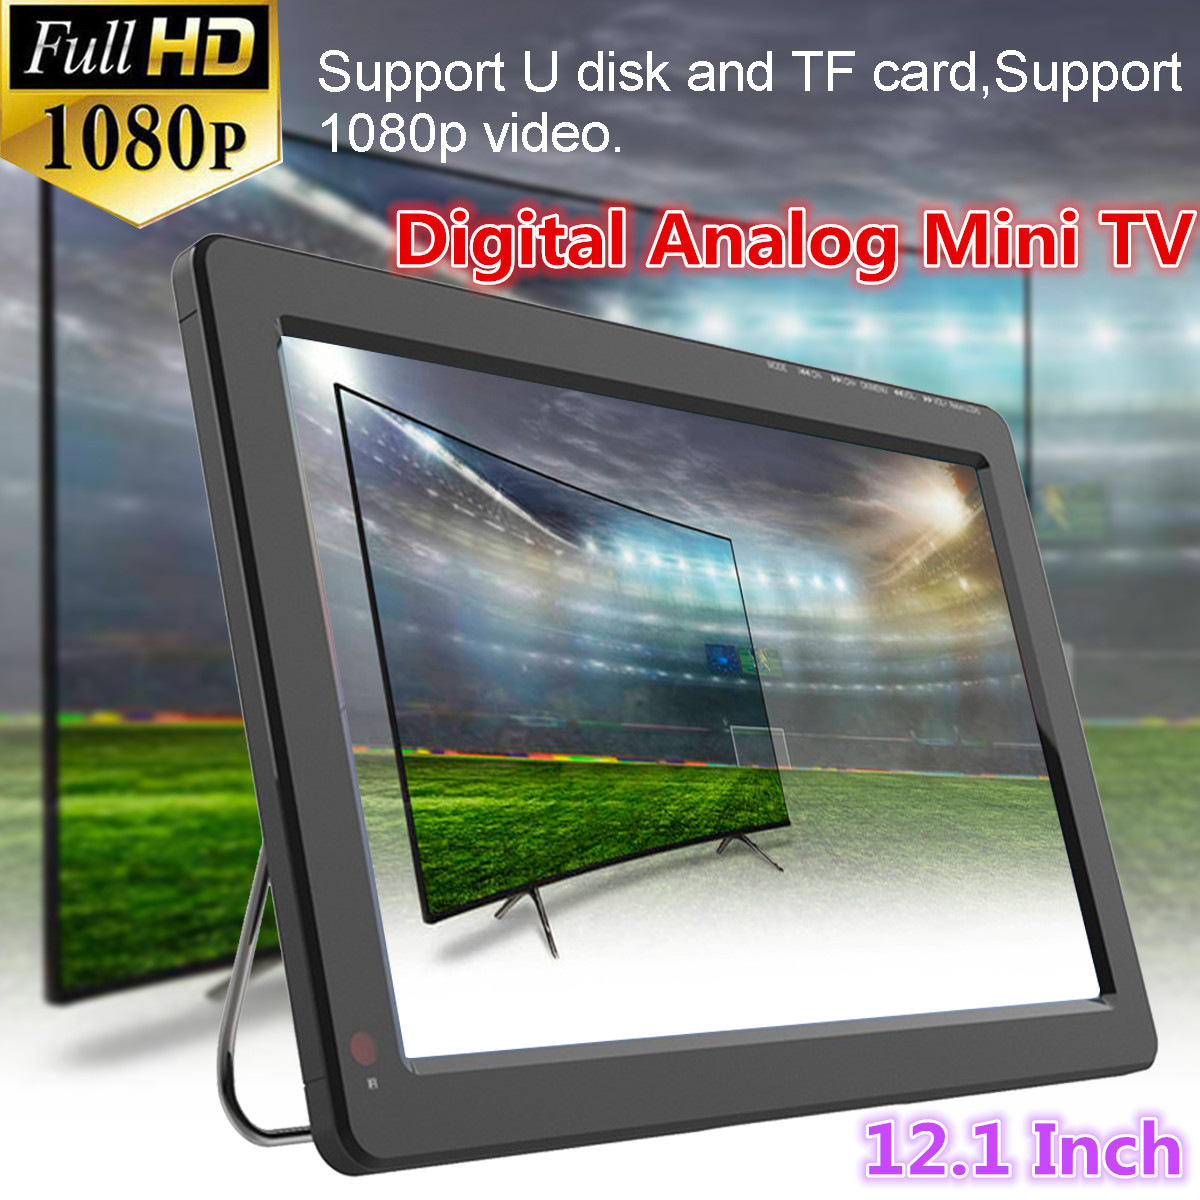 12V 18W 12.1 Inch Portable Digital Analog Mini <font><b>TV</b></font> DVB-T / DVB-T2 TFT LED 1080P HD <font><b>Car</b></font> <font><b>TV</b></font> Support TF Card USB Audio Eu Plug image